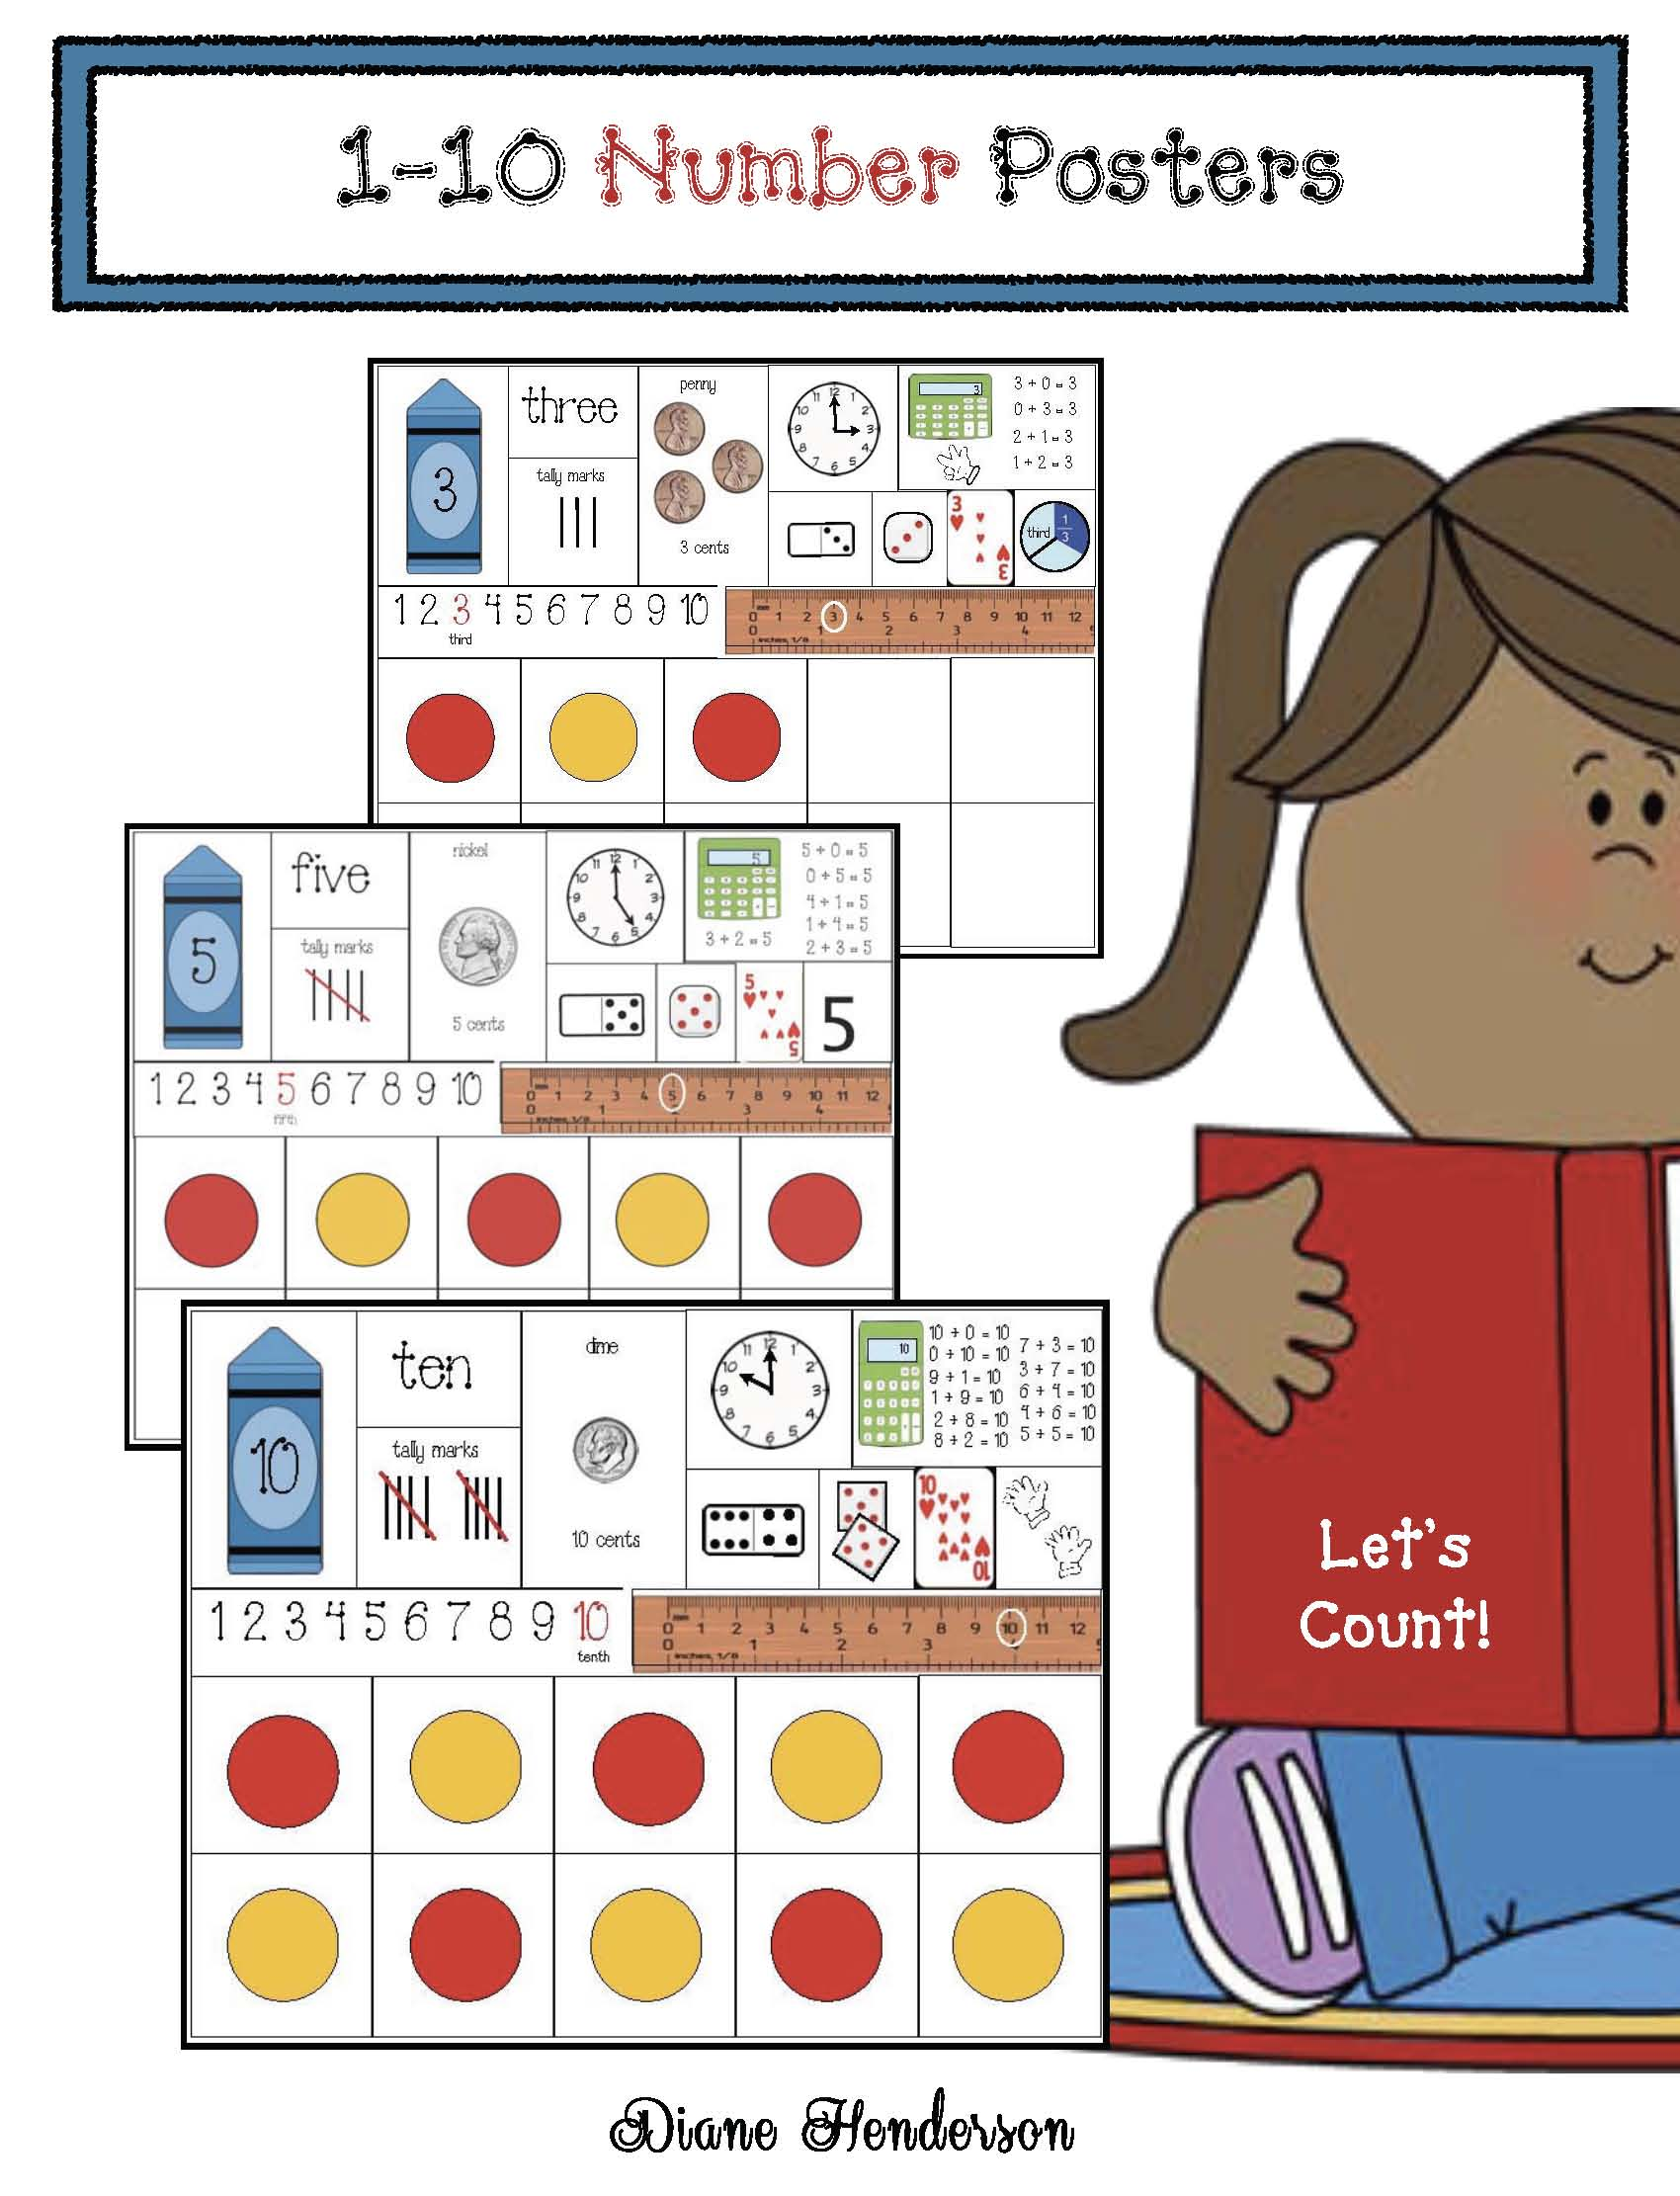 counting activities, number cards, number games, number centers, number puzzles, ways to show a number, math centers, math games, number posters